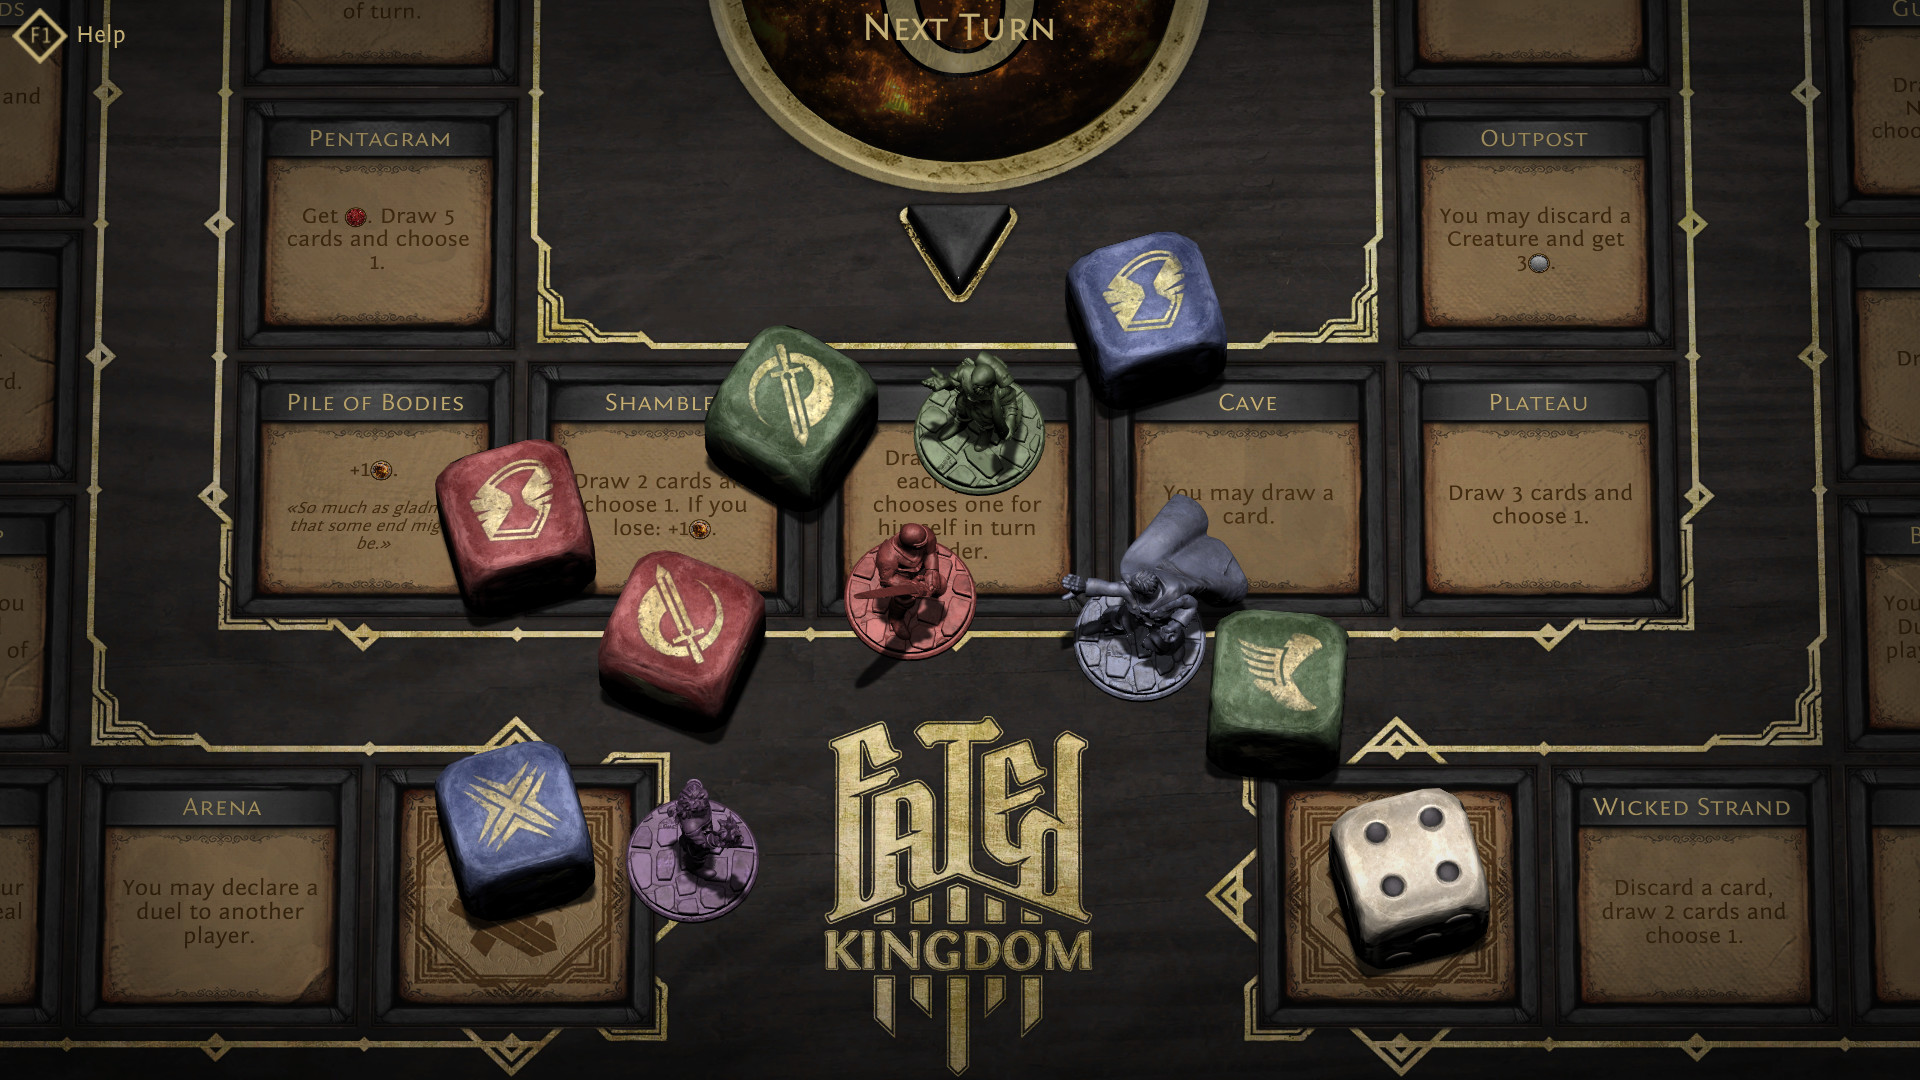 Fated Kingdom screenshot